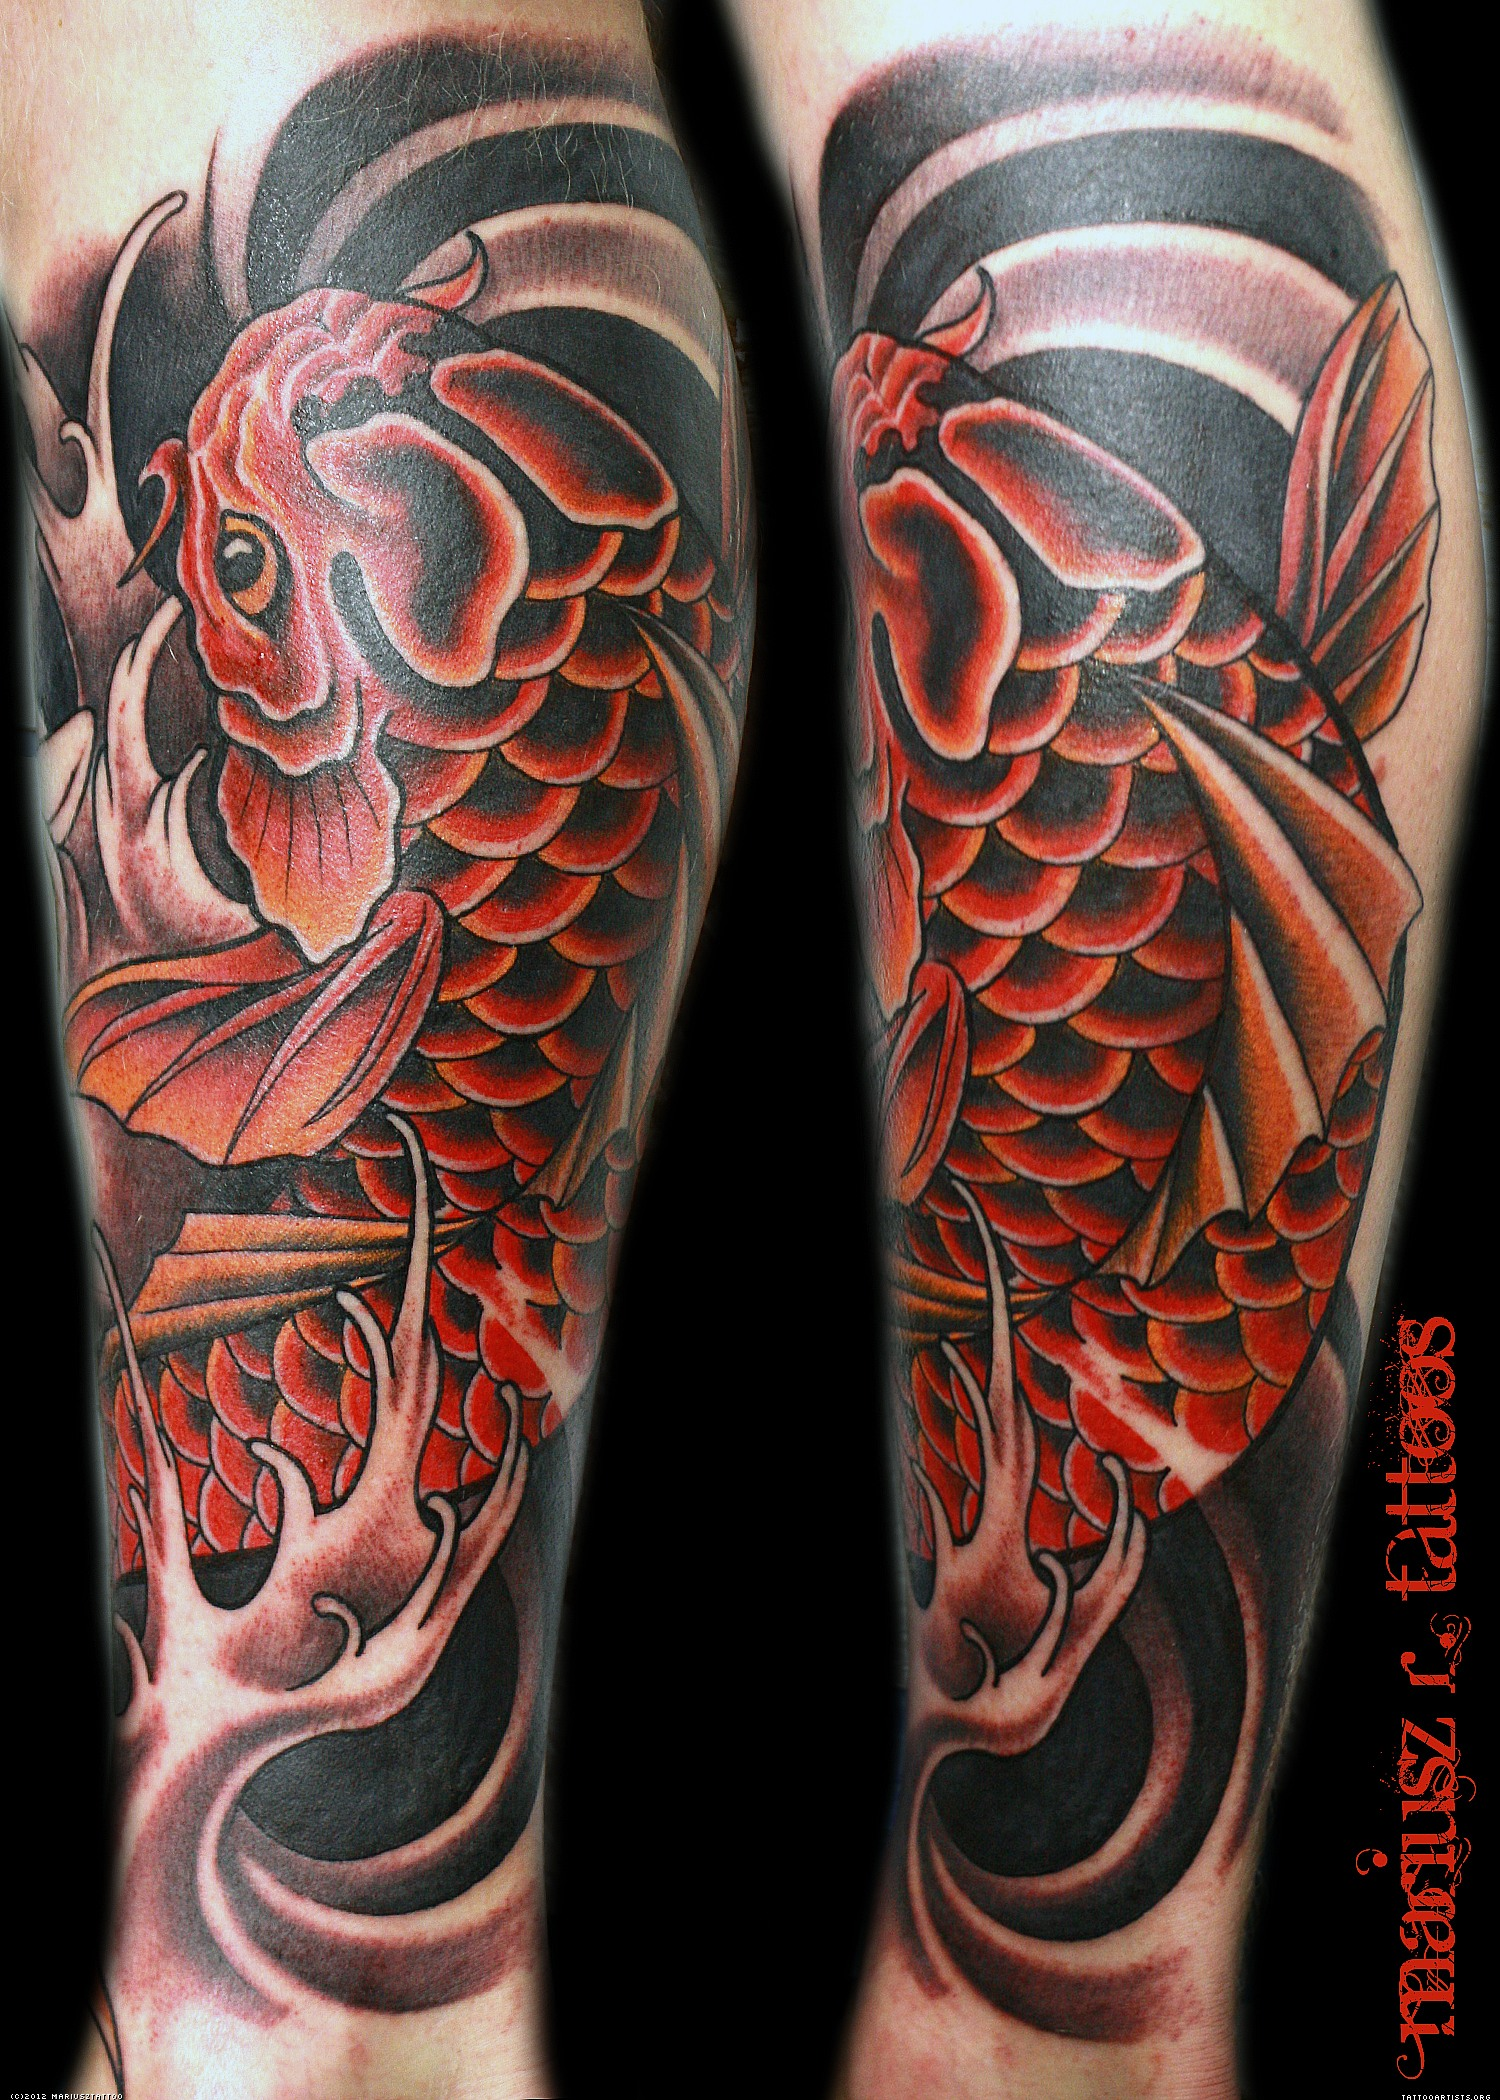 Awesome Color Ink Aqua Tattoo On Leg